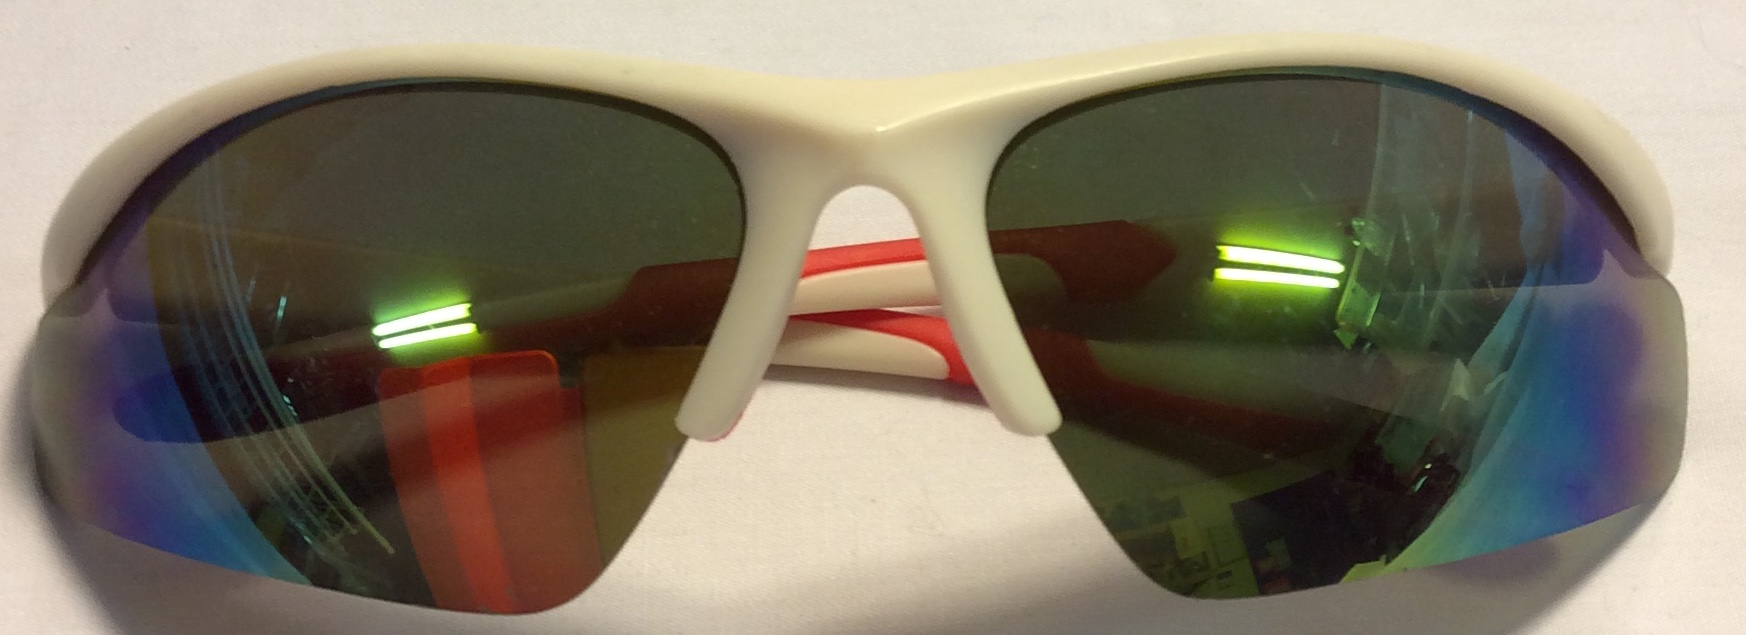 White plastic frames, red rubber